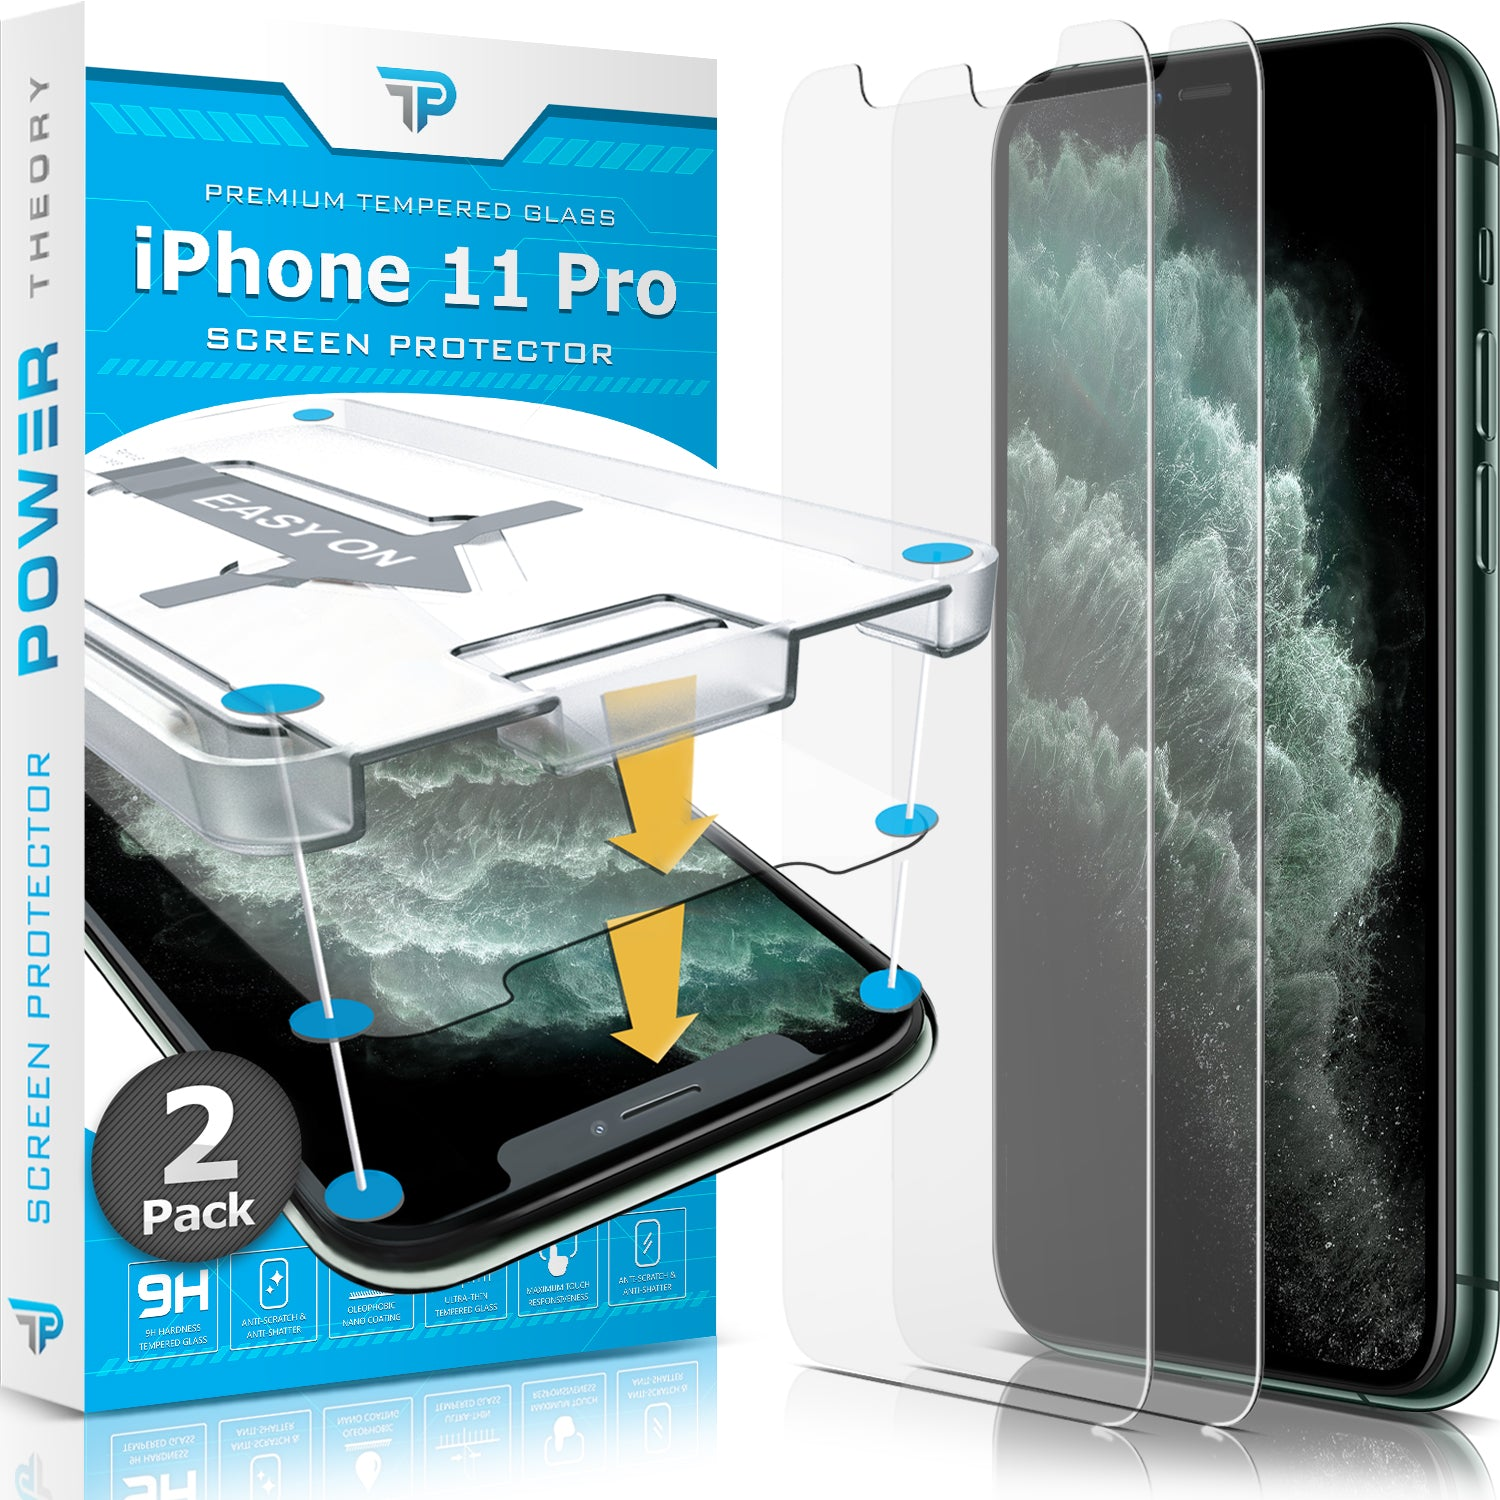 Power Theory iPhone 11 Pro Glass Screen Protector [2-Pack]